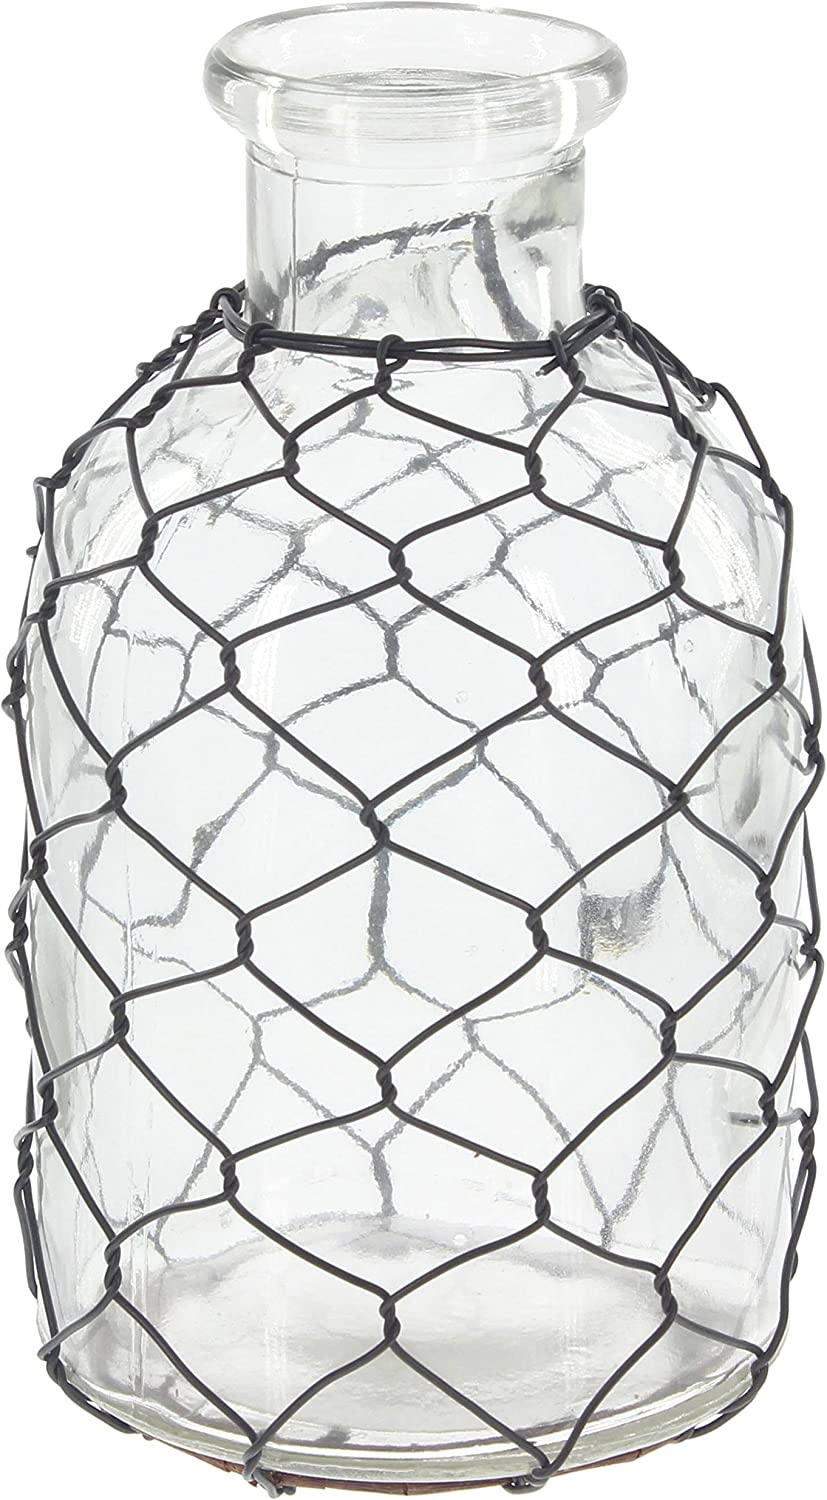 "Park Hill Home Decor Farmhouse Glass Bottle with Chicken Wire Wrap (7"" x 3.75"")"